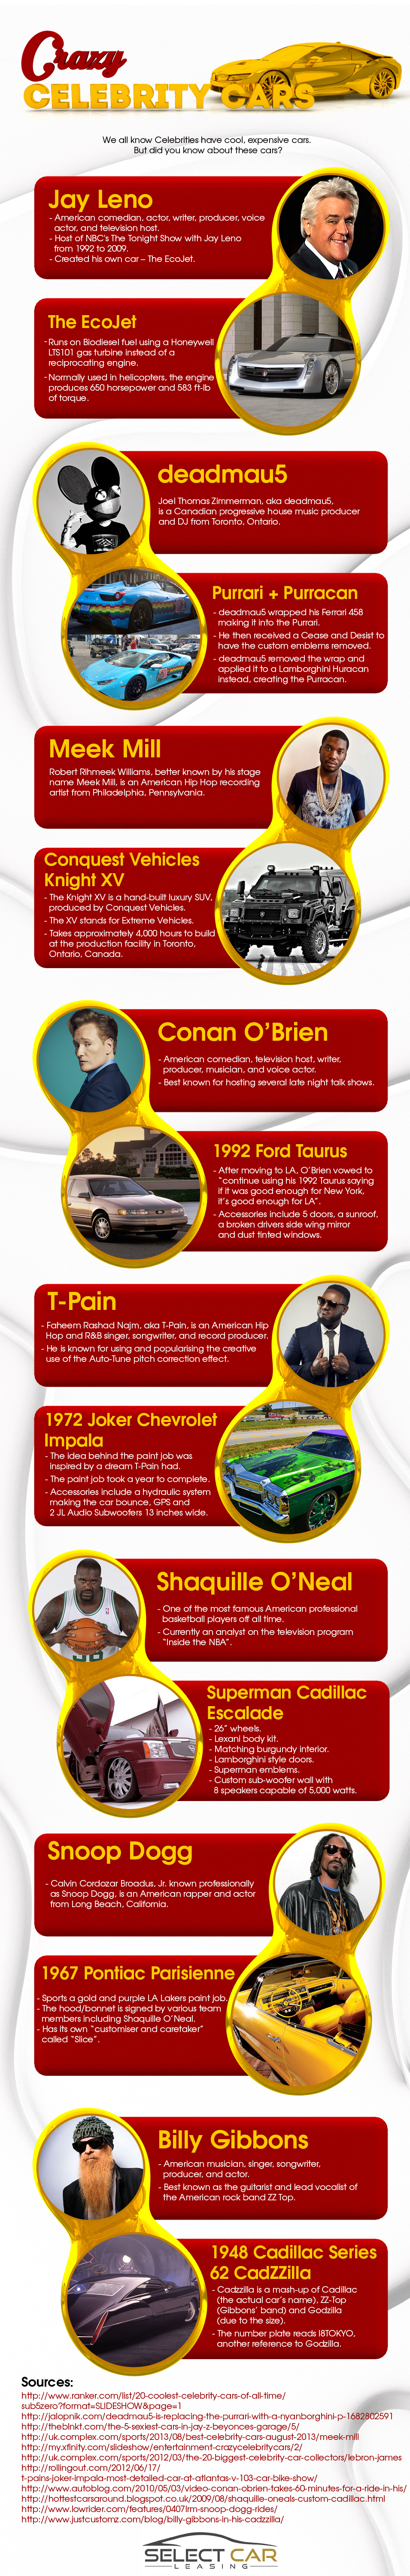 The 20 Biggest Celebrity Car Collectors | Complex